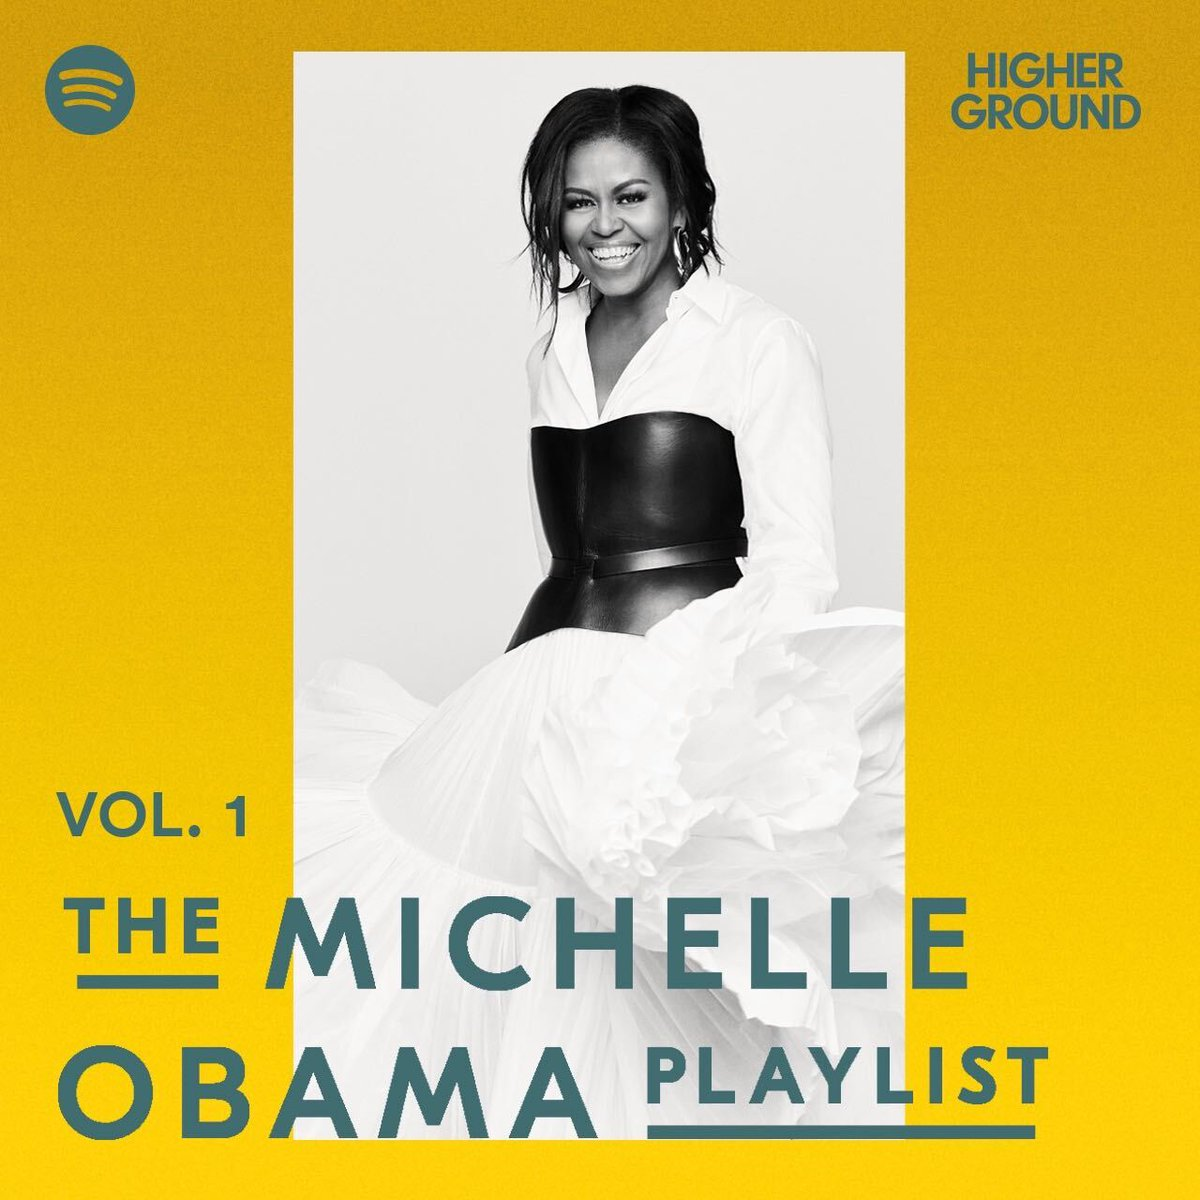 Excited to share with you a new @Spotify playlist inspired by the first season of my new podcast. Its filled with incredible new artists and a whole lot of #BlackGirlMagic. I hope youll give it a listen. #MichelleObamaPodcast spoti.fi/TheMichelleOba…